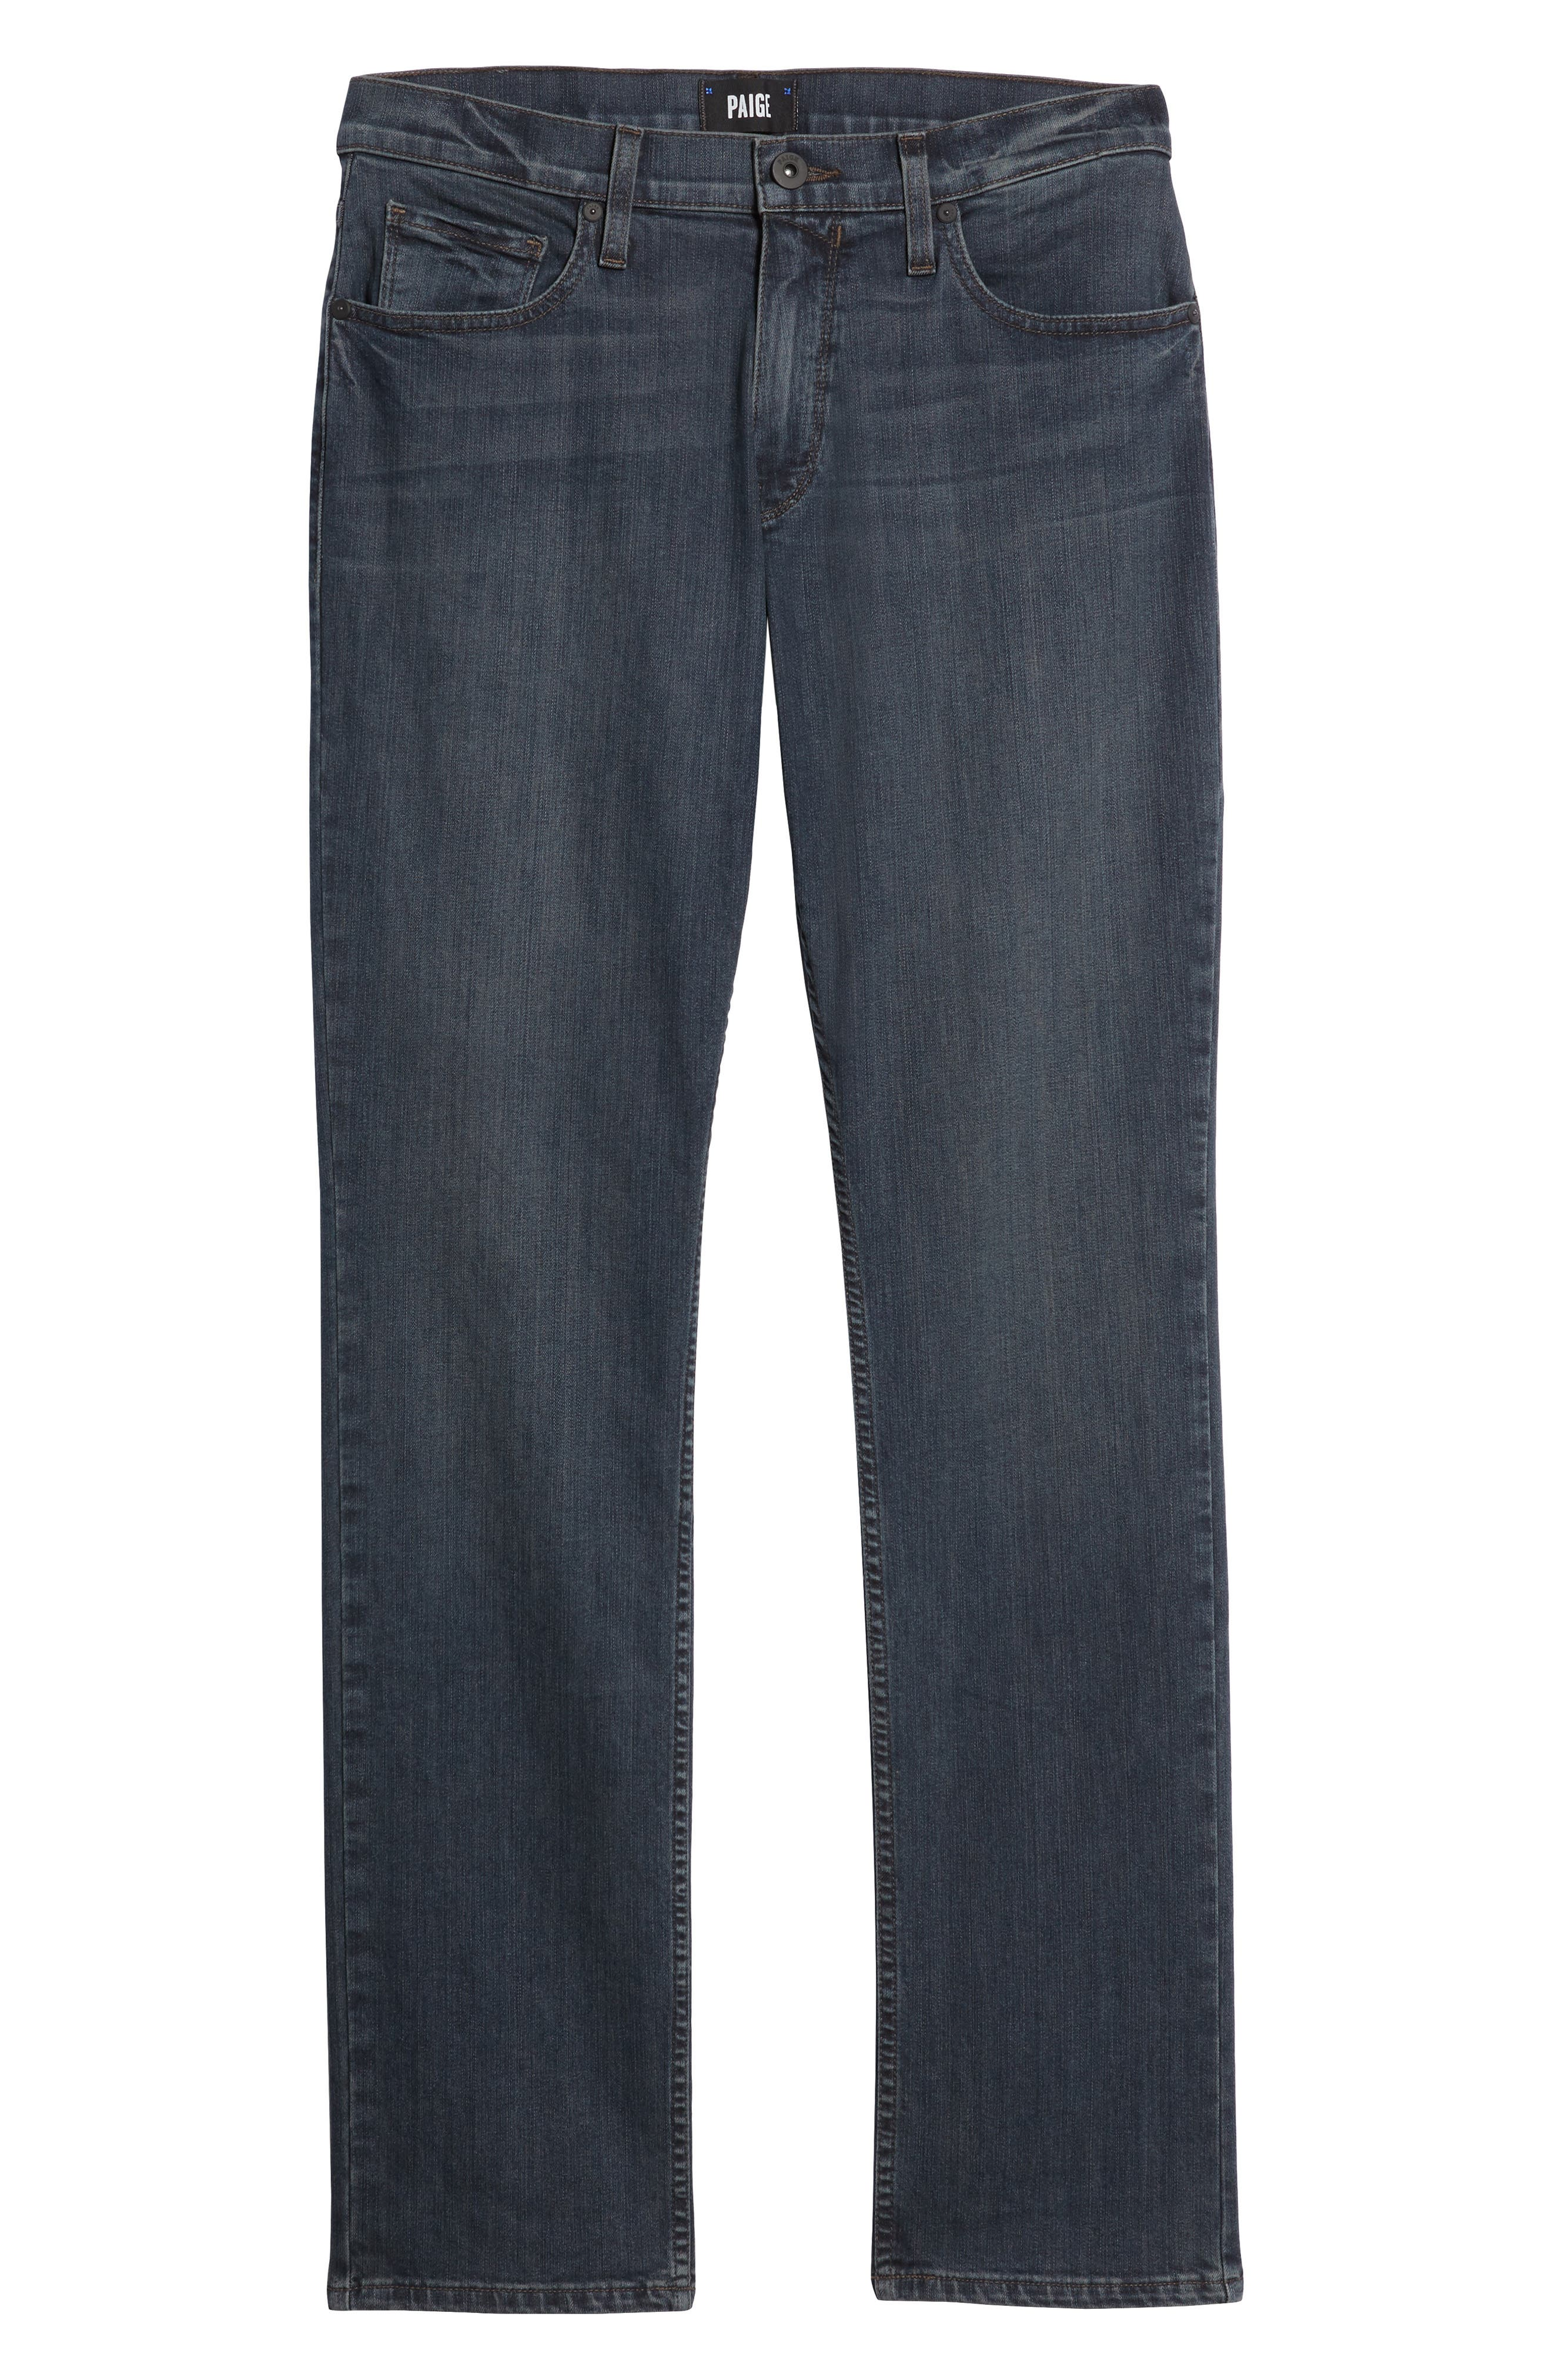 Legacy - Federal Slim Straight Leg Jeans,                             Alternate thumbnail 6, color,                             Triton